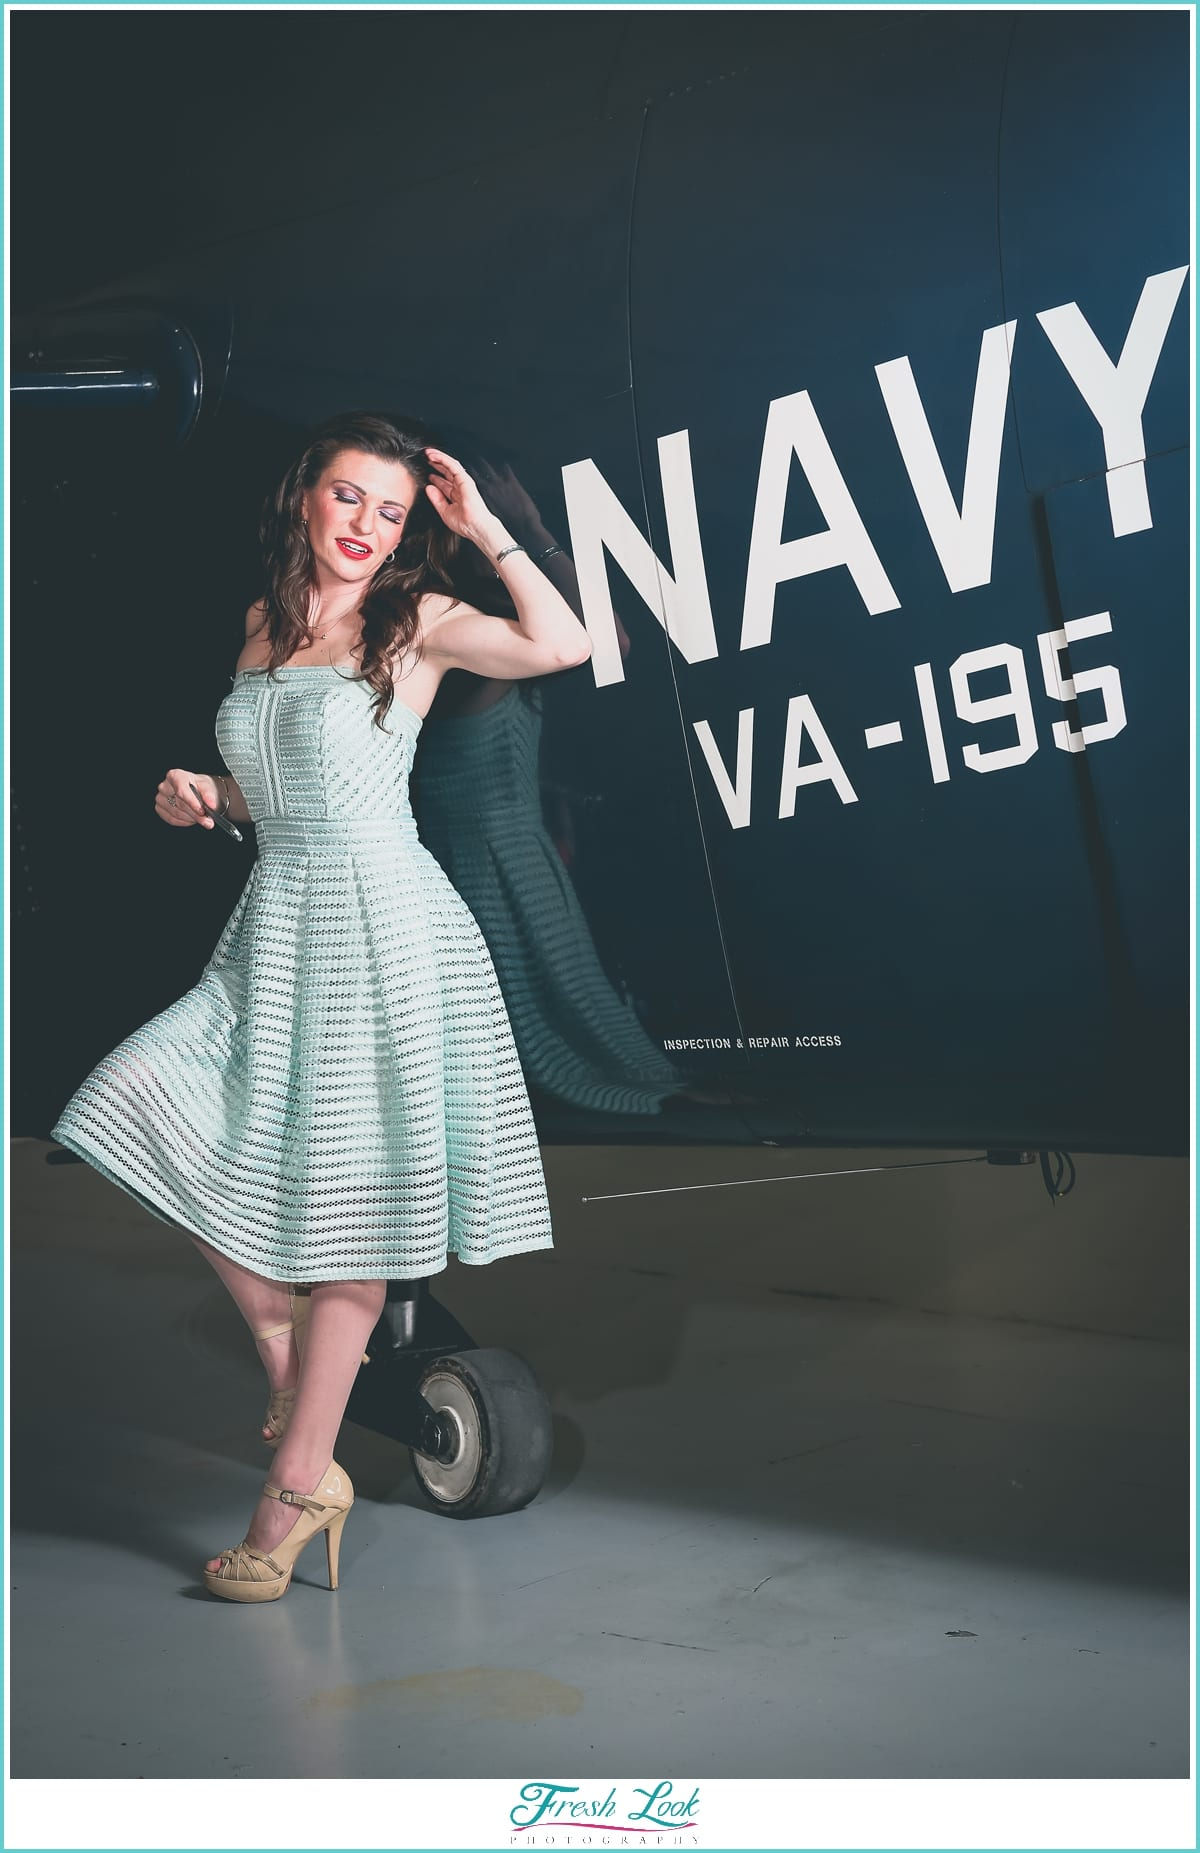 Vintage pin up vixen with Navy plane